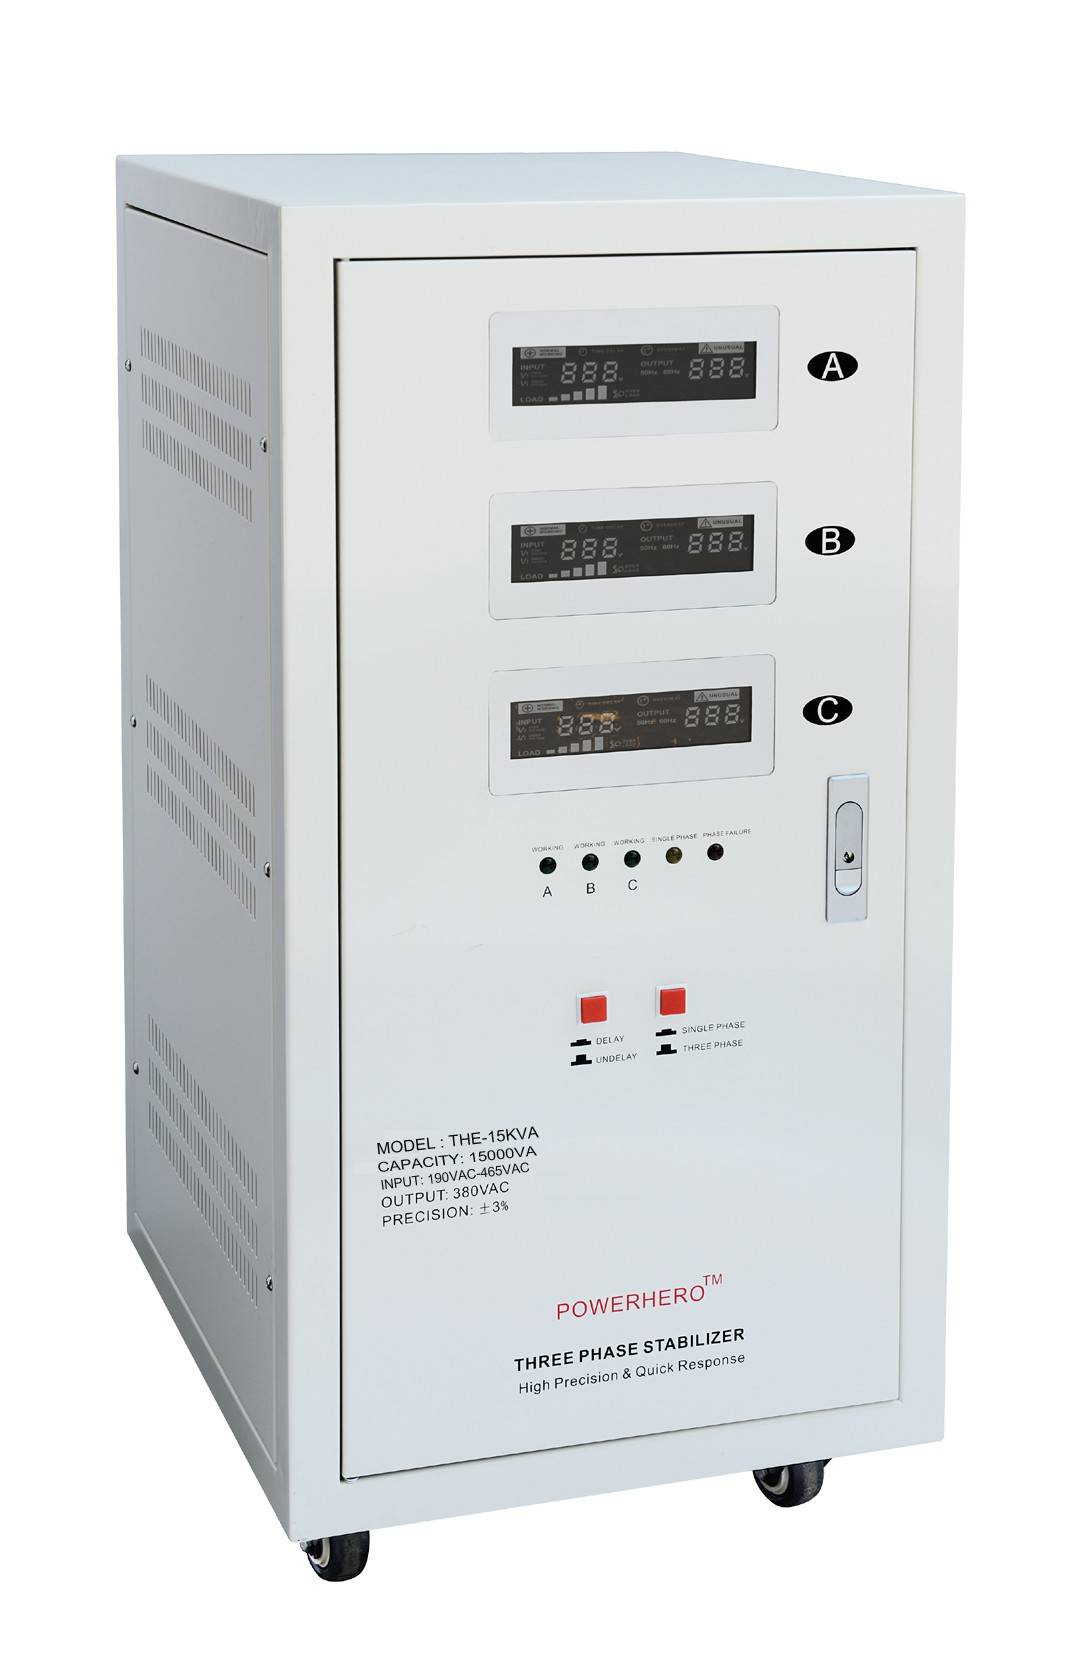 60KVA servo motor three phase stabilizer AVR with high precision